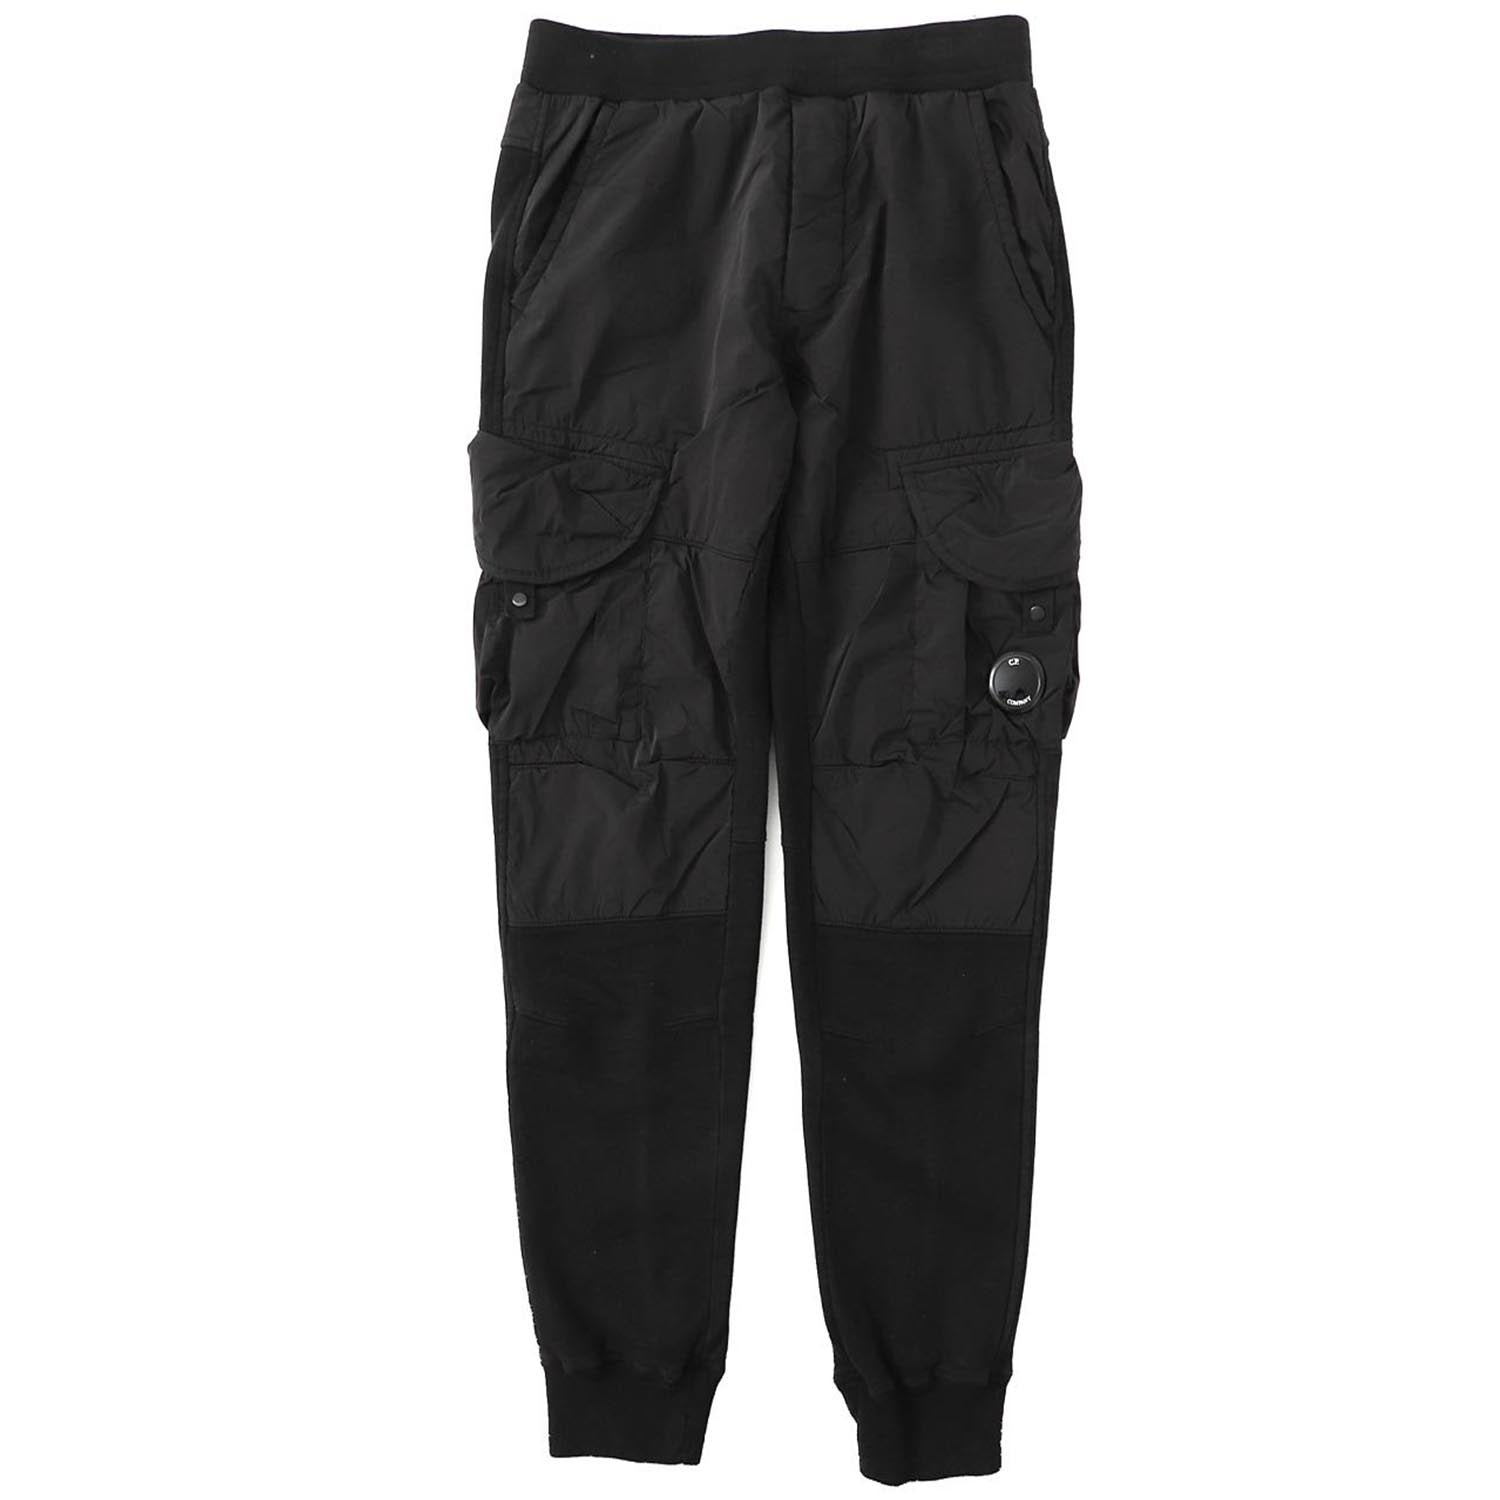 CP Company Mixed Sweatpants